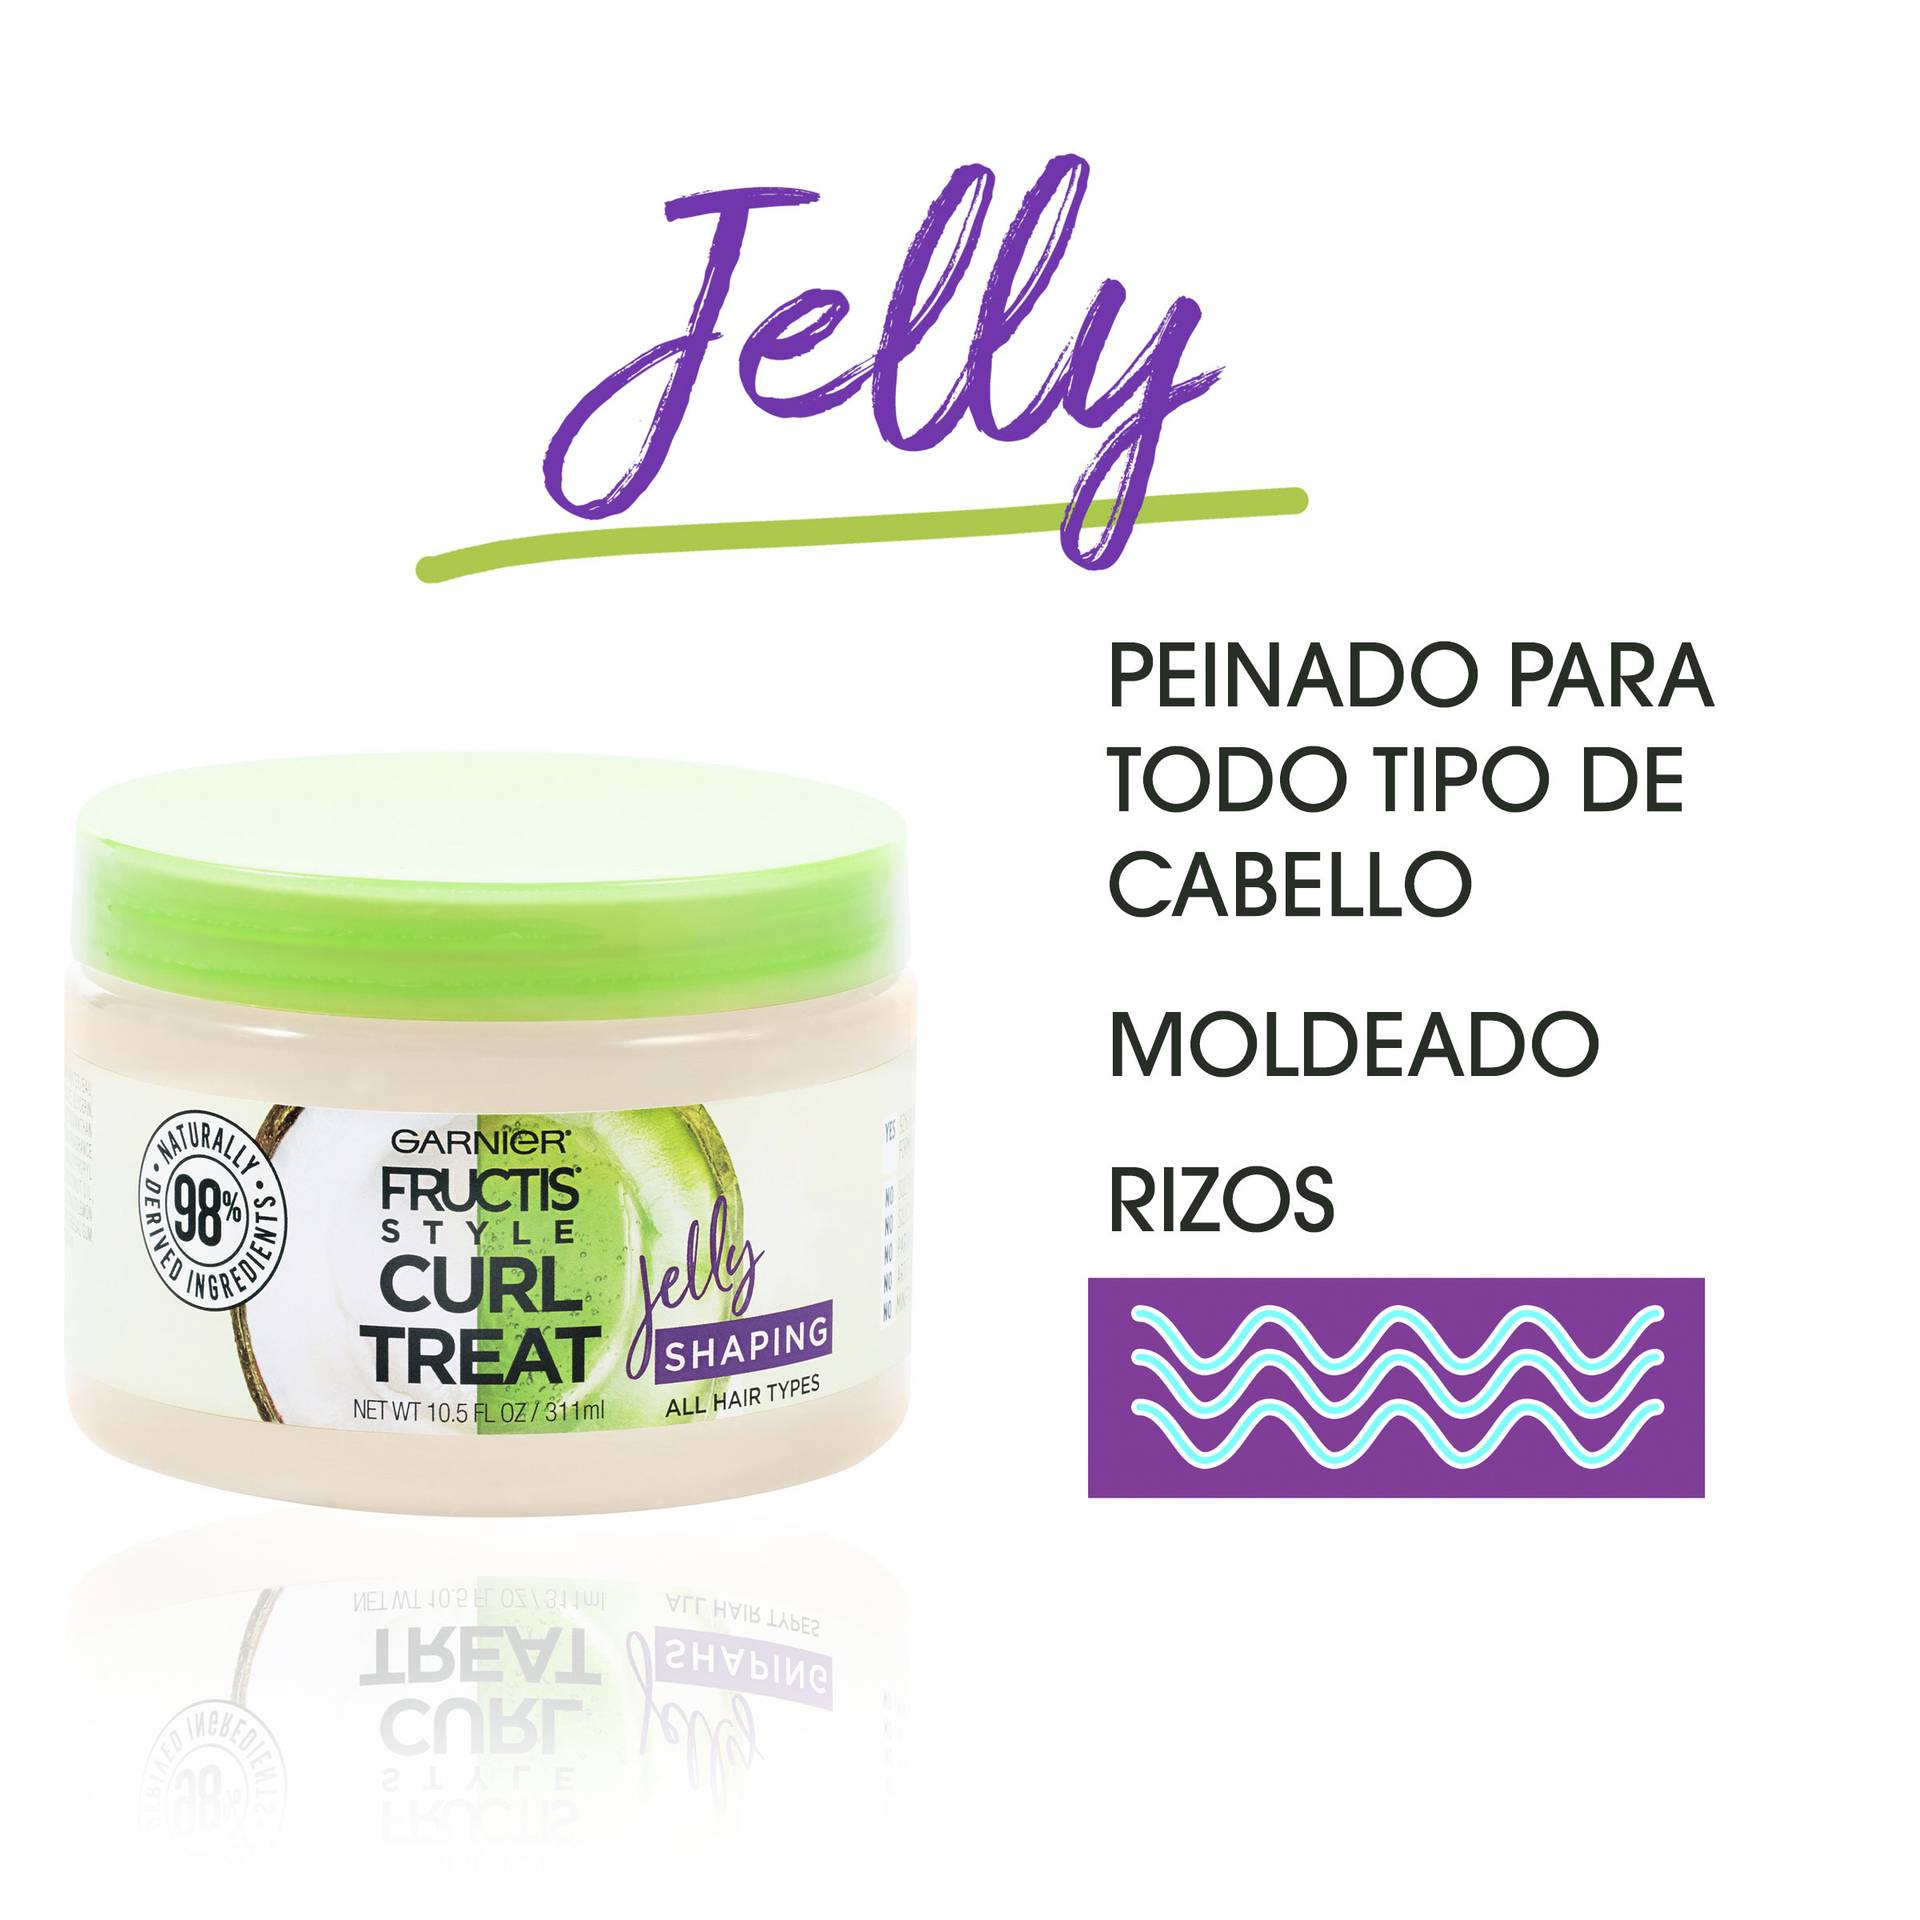 Curl Treat jelly benefits